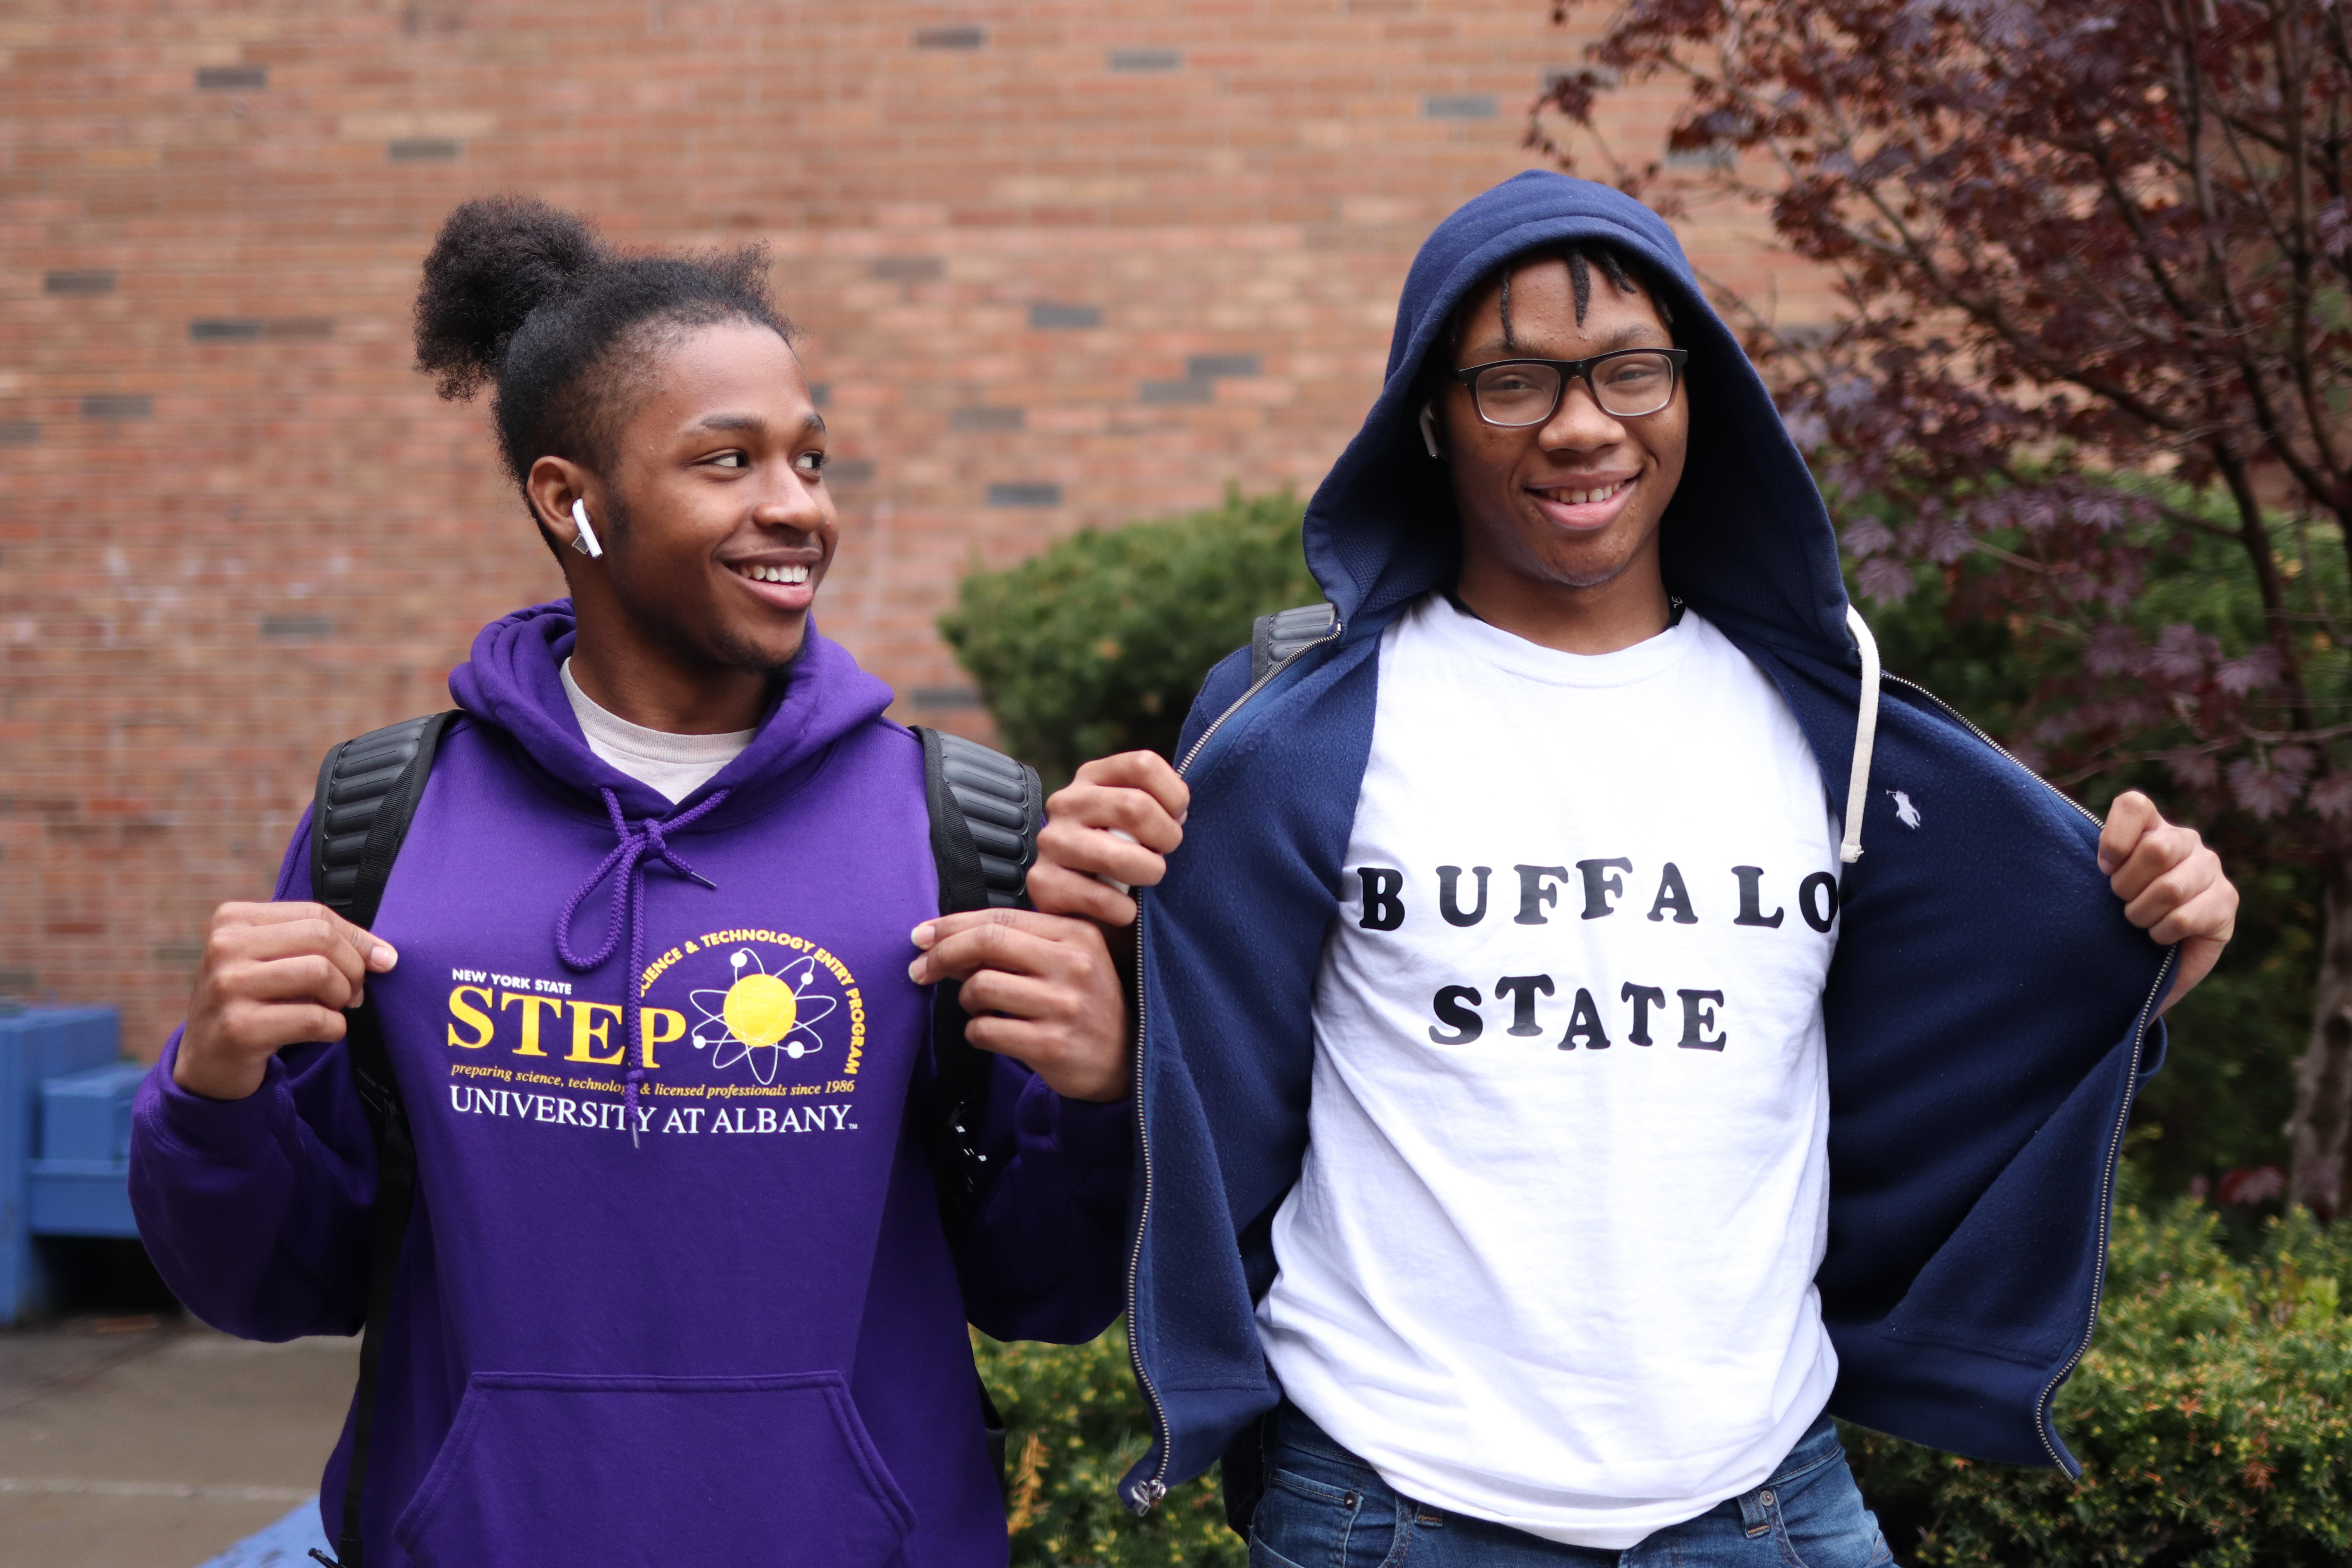 Two students showing off their college t-shirts.